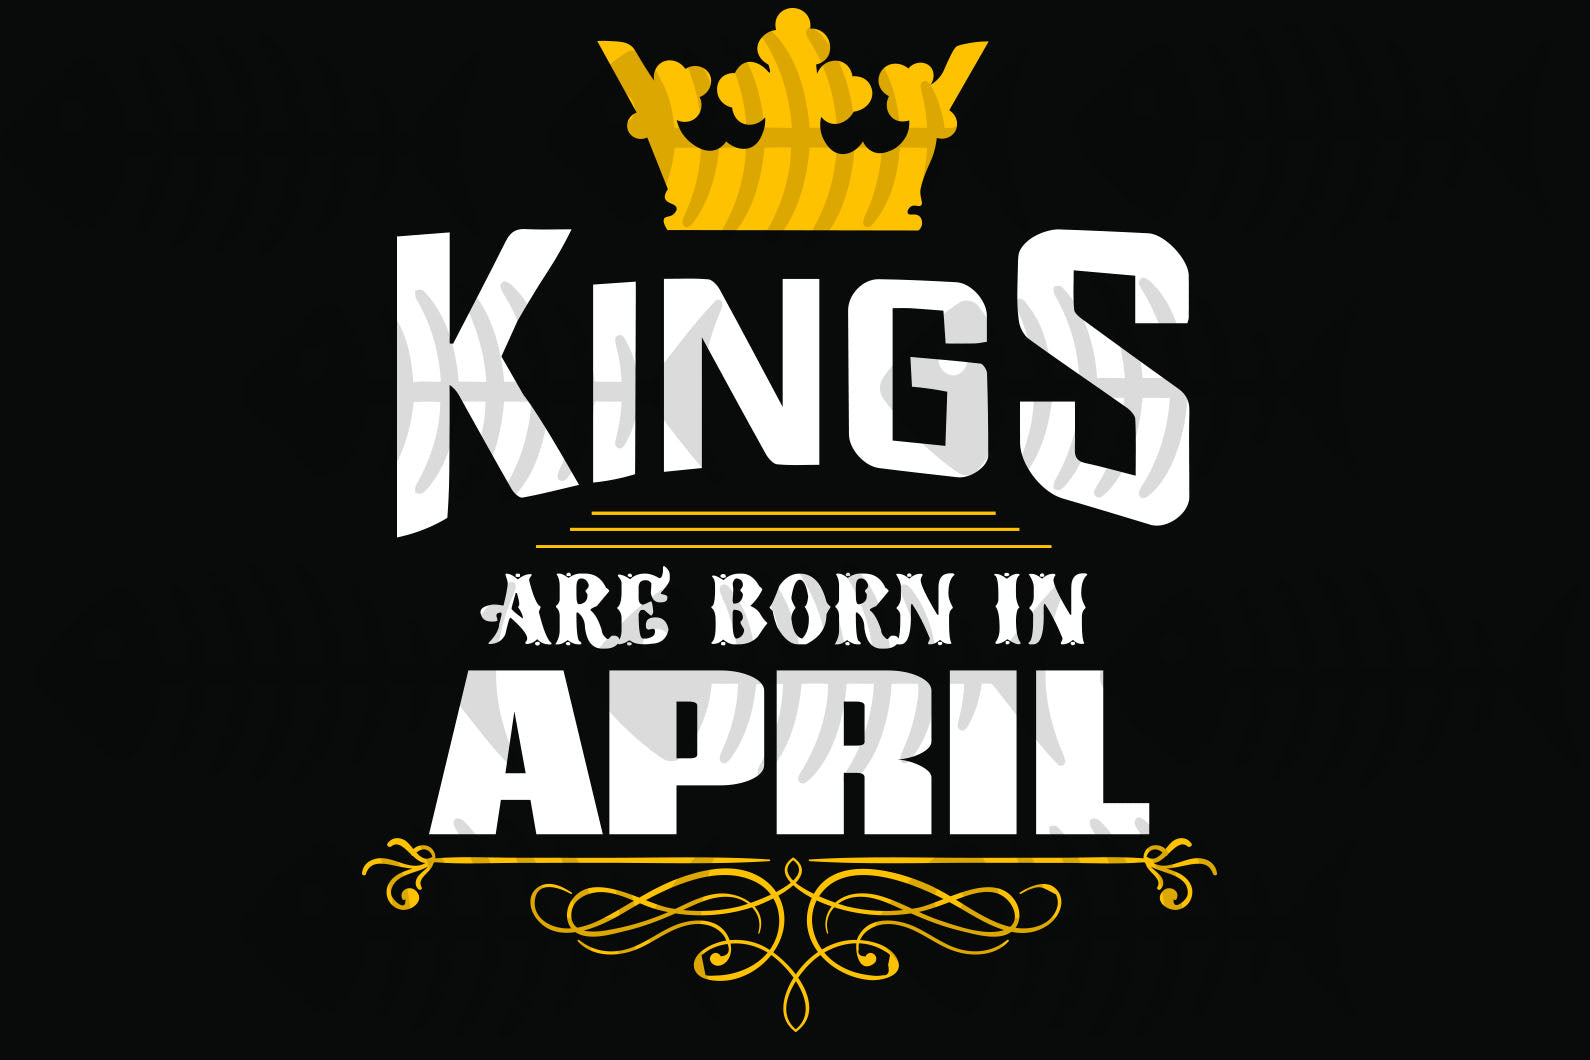 Kings are born in April, April girl svg, born in April , living my best life, April birthday, April girl shirt, April svg, April gift, April girl gifts, black girl svg, birthday svg, black lives matter, svg cut files, svg clipart,